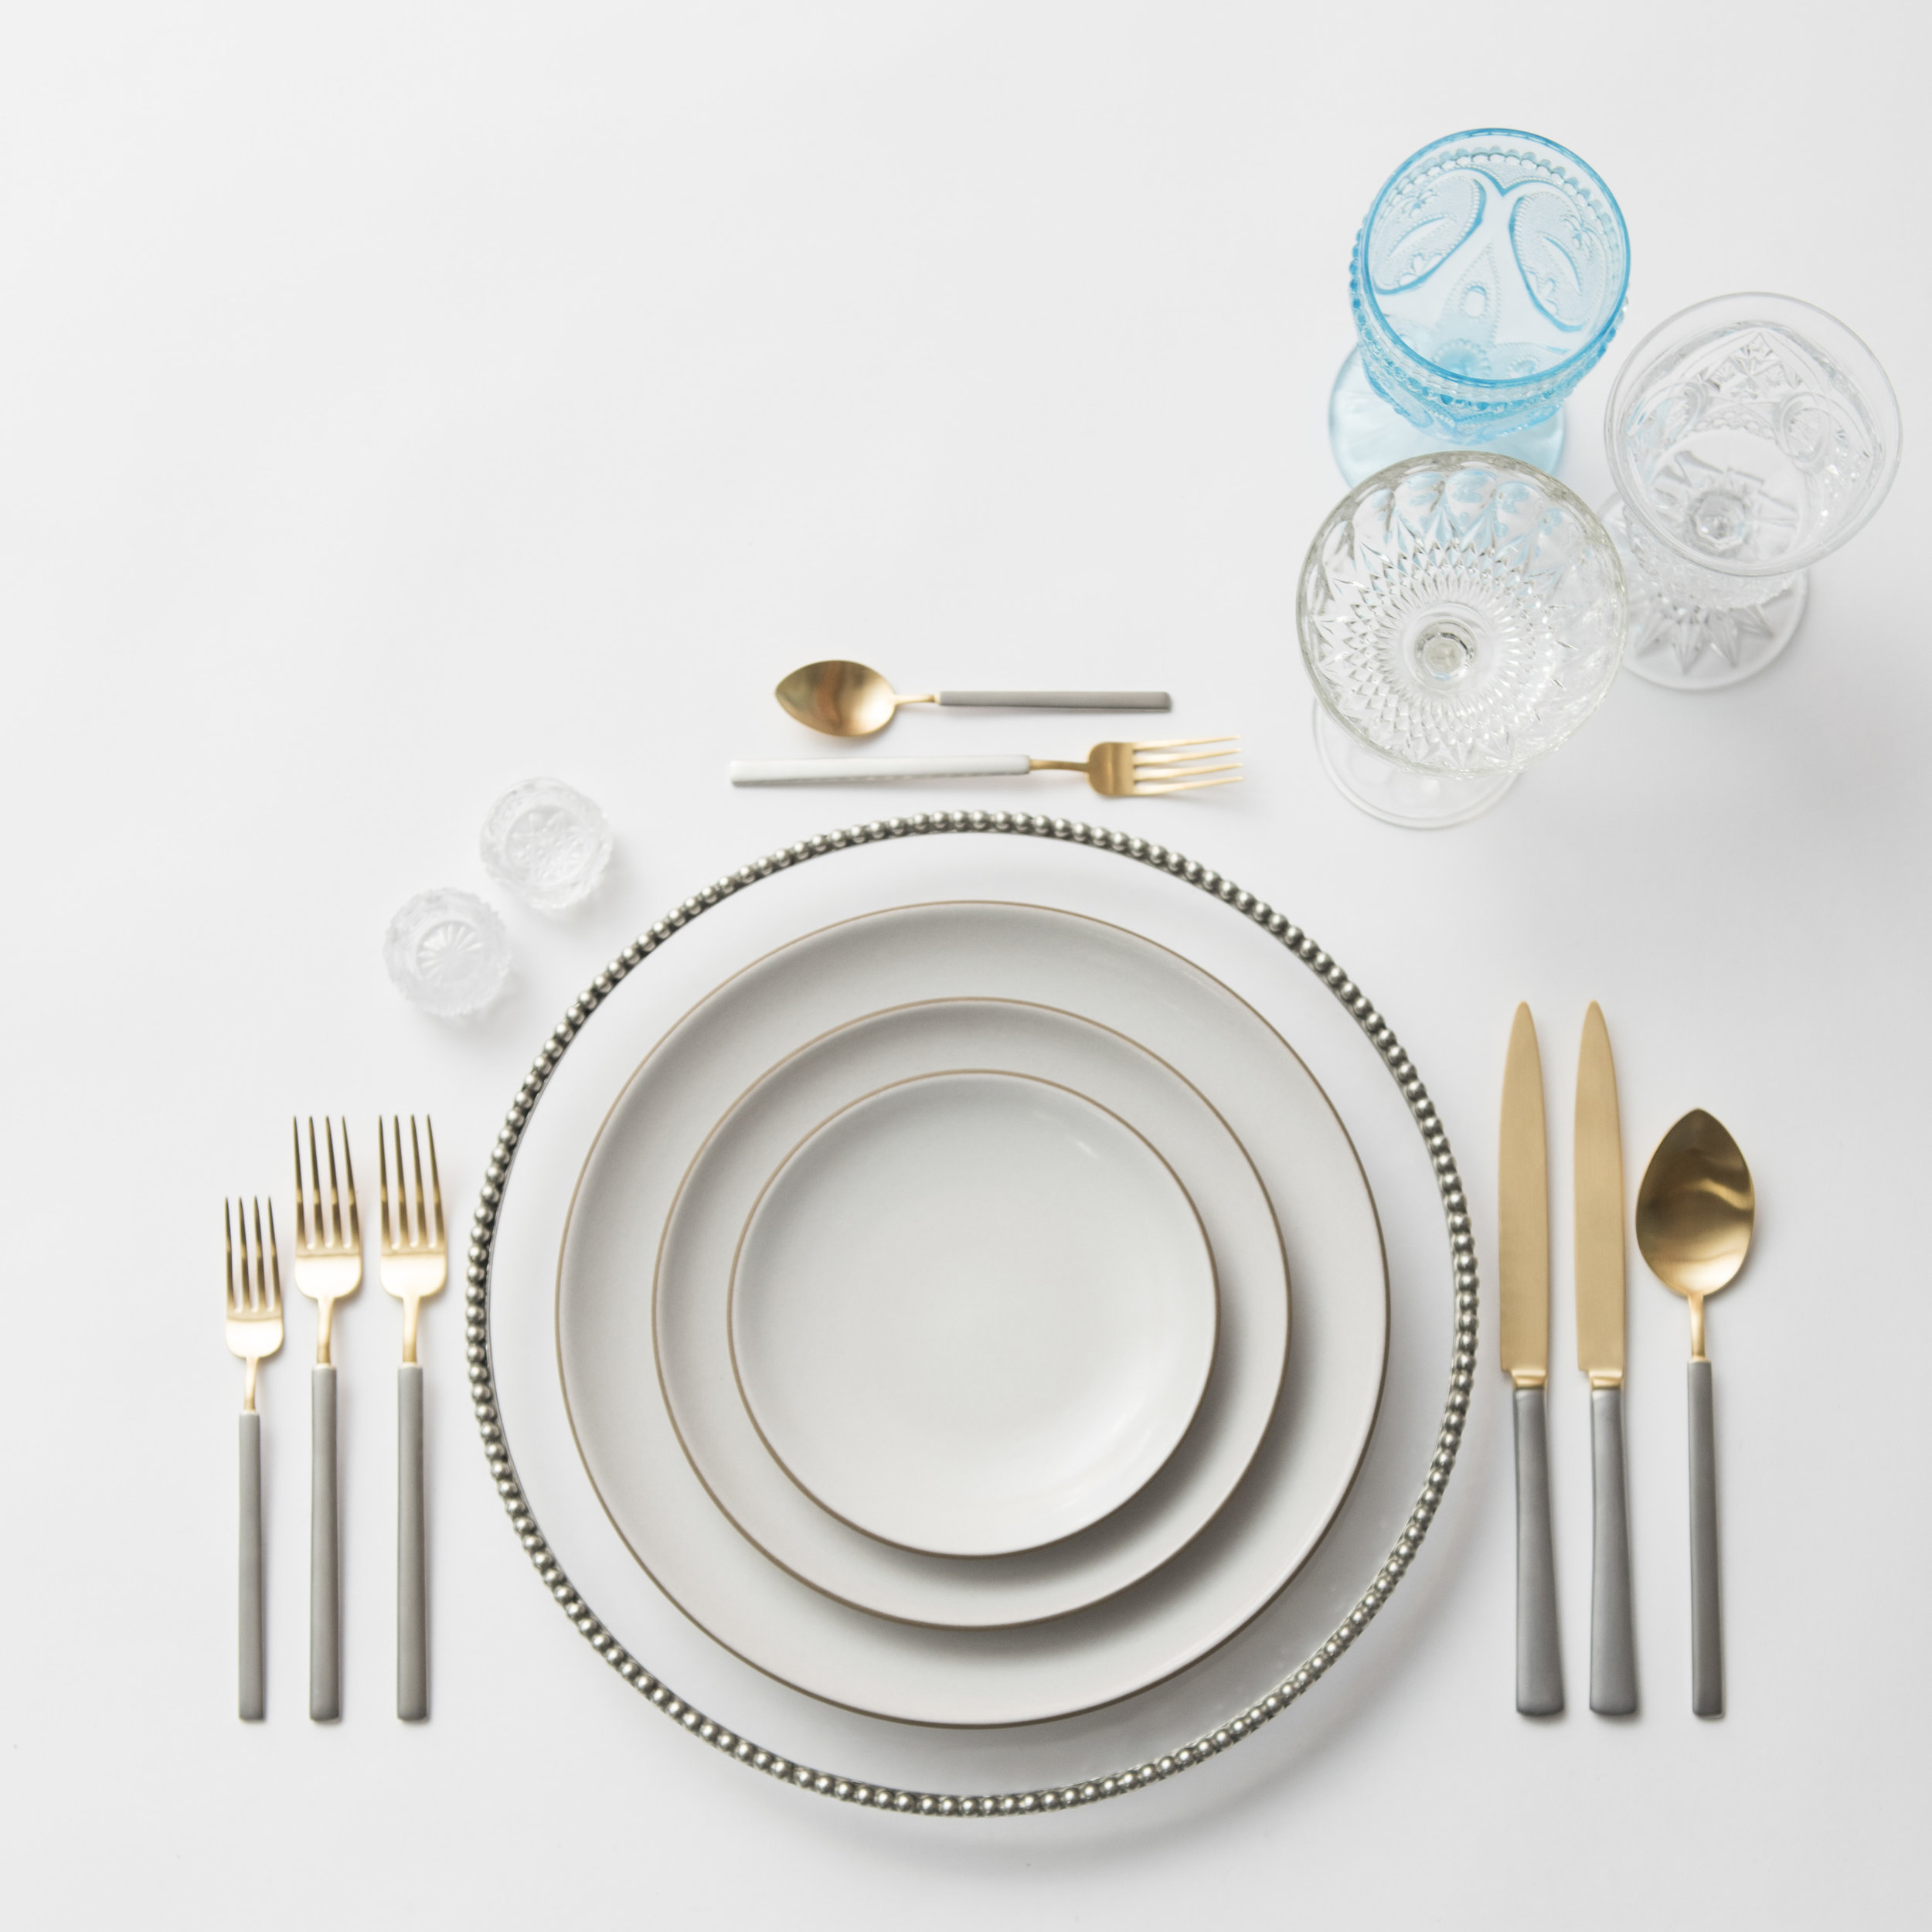 RENT: Pav é Glass Chargers in Pewter + Heath Ceramics in Opaque White + Axel Flatware in Matte 24k Gold/Silver + Aqua Vintage Goblets + Early American Pressed Glass Goblets + Vintage Champagne Coupes + Antique Crystal Salt Cellars